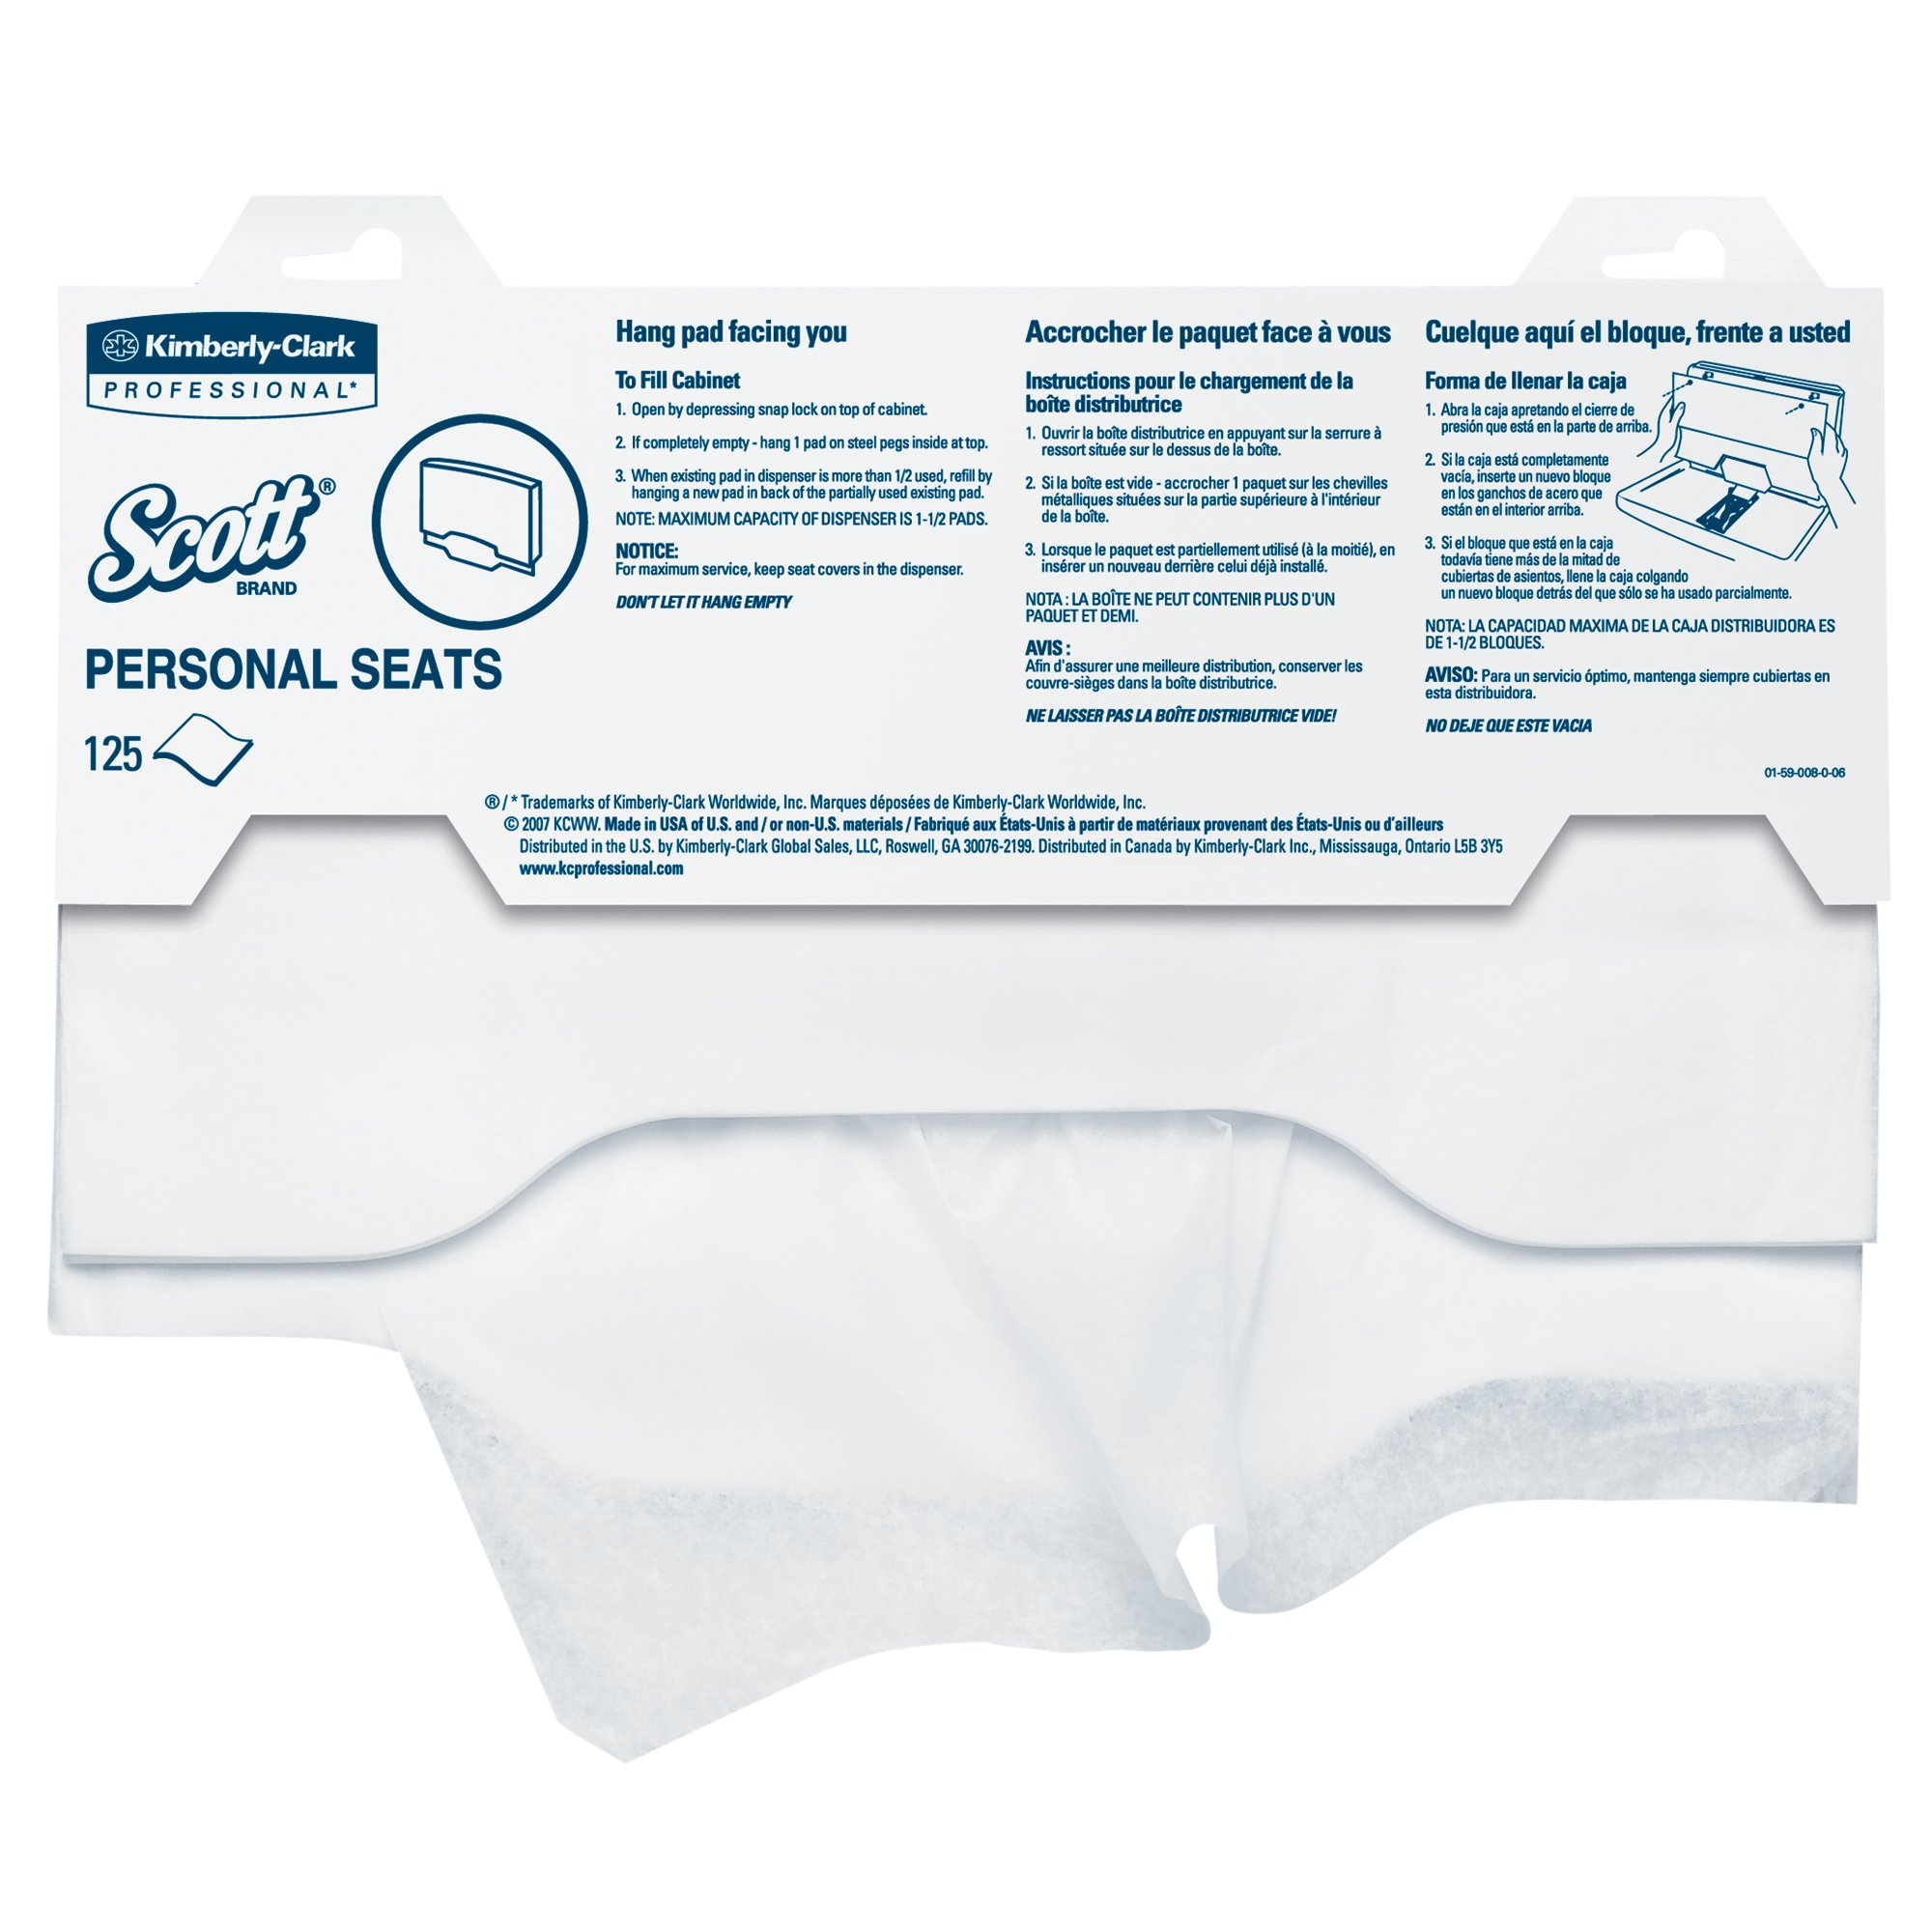 Scott Pro Toilet Seat Cover (07410), White, Disposable, 125 Covers/Pack, 24 Packs/Case